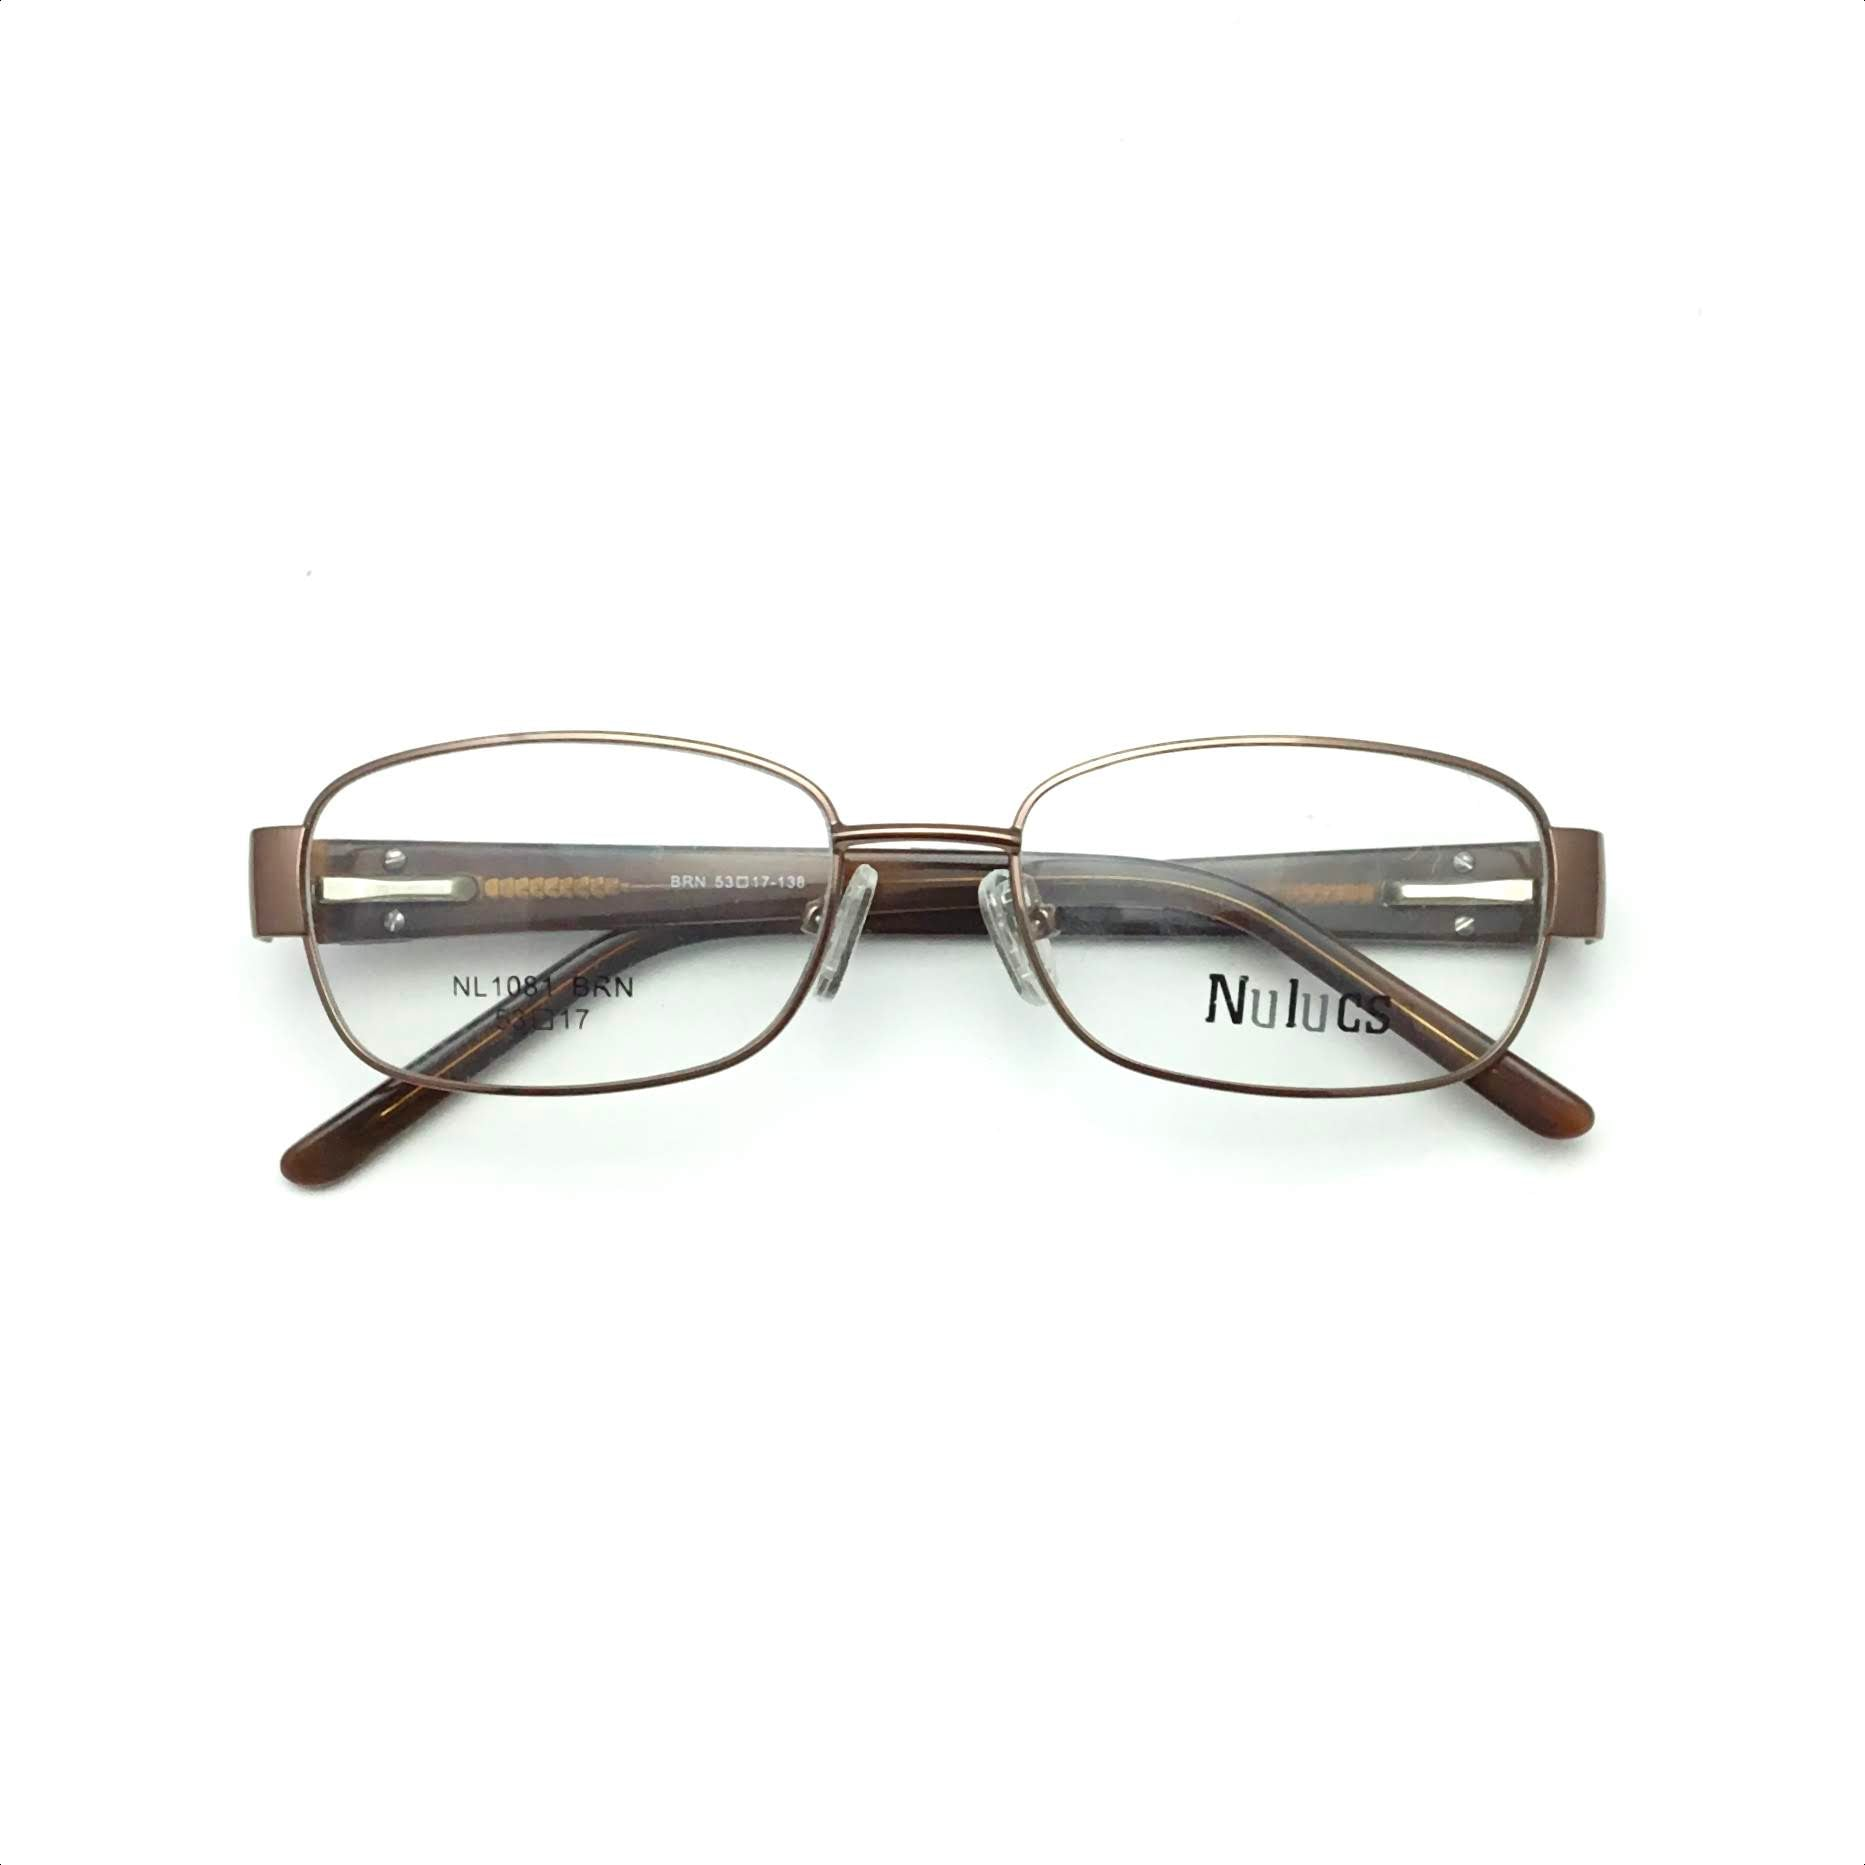 Nulucs Glasses $39 Women B4